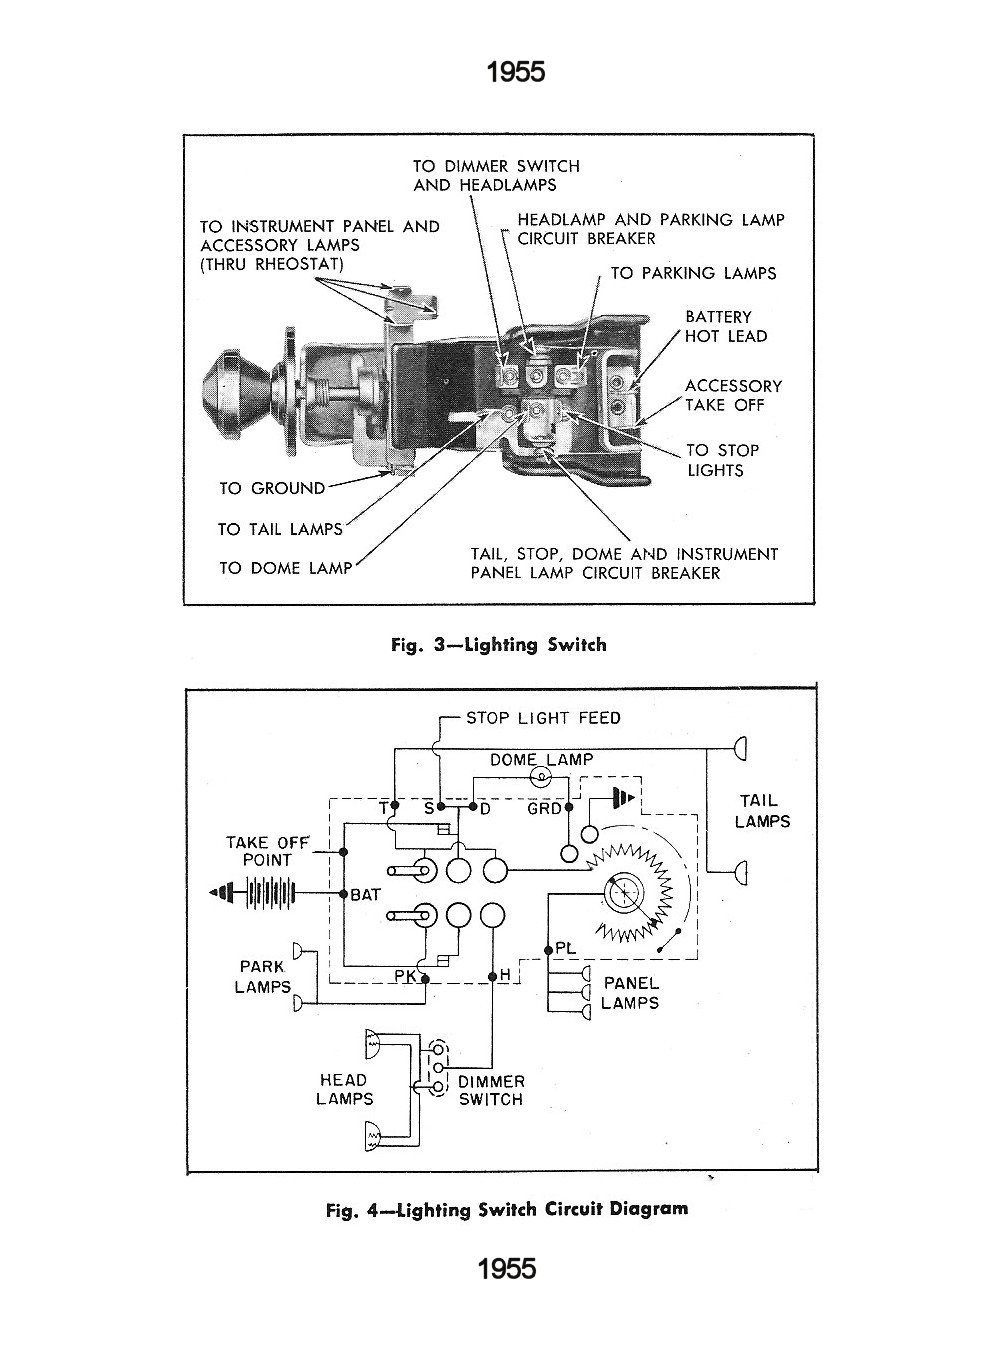 55csm1204a chevy wiring diagrams 66 Chevy Headlight Switch Wiring Diagram at pacquiaovsvargaslive.co